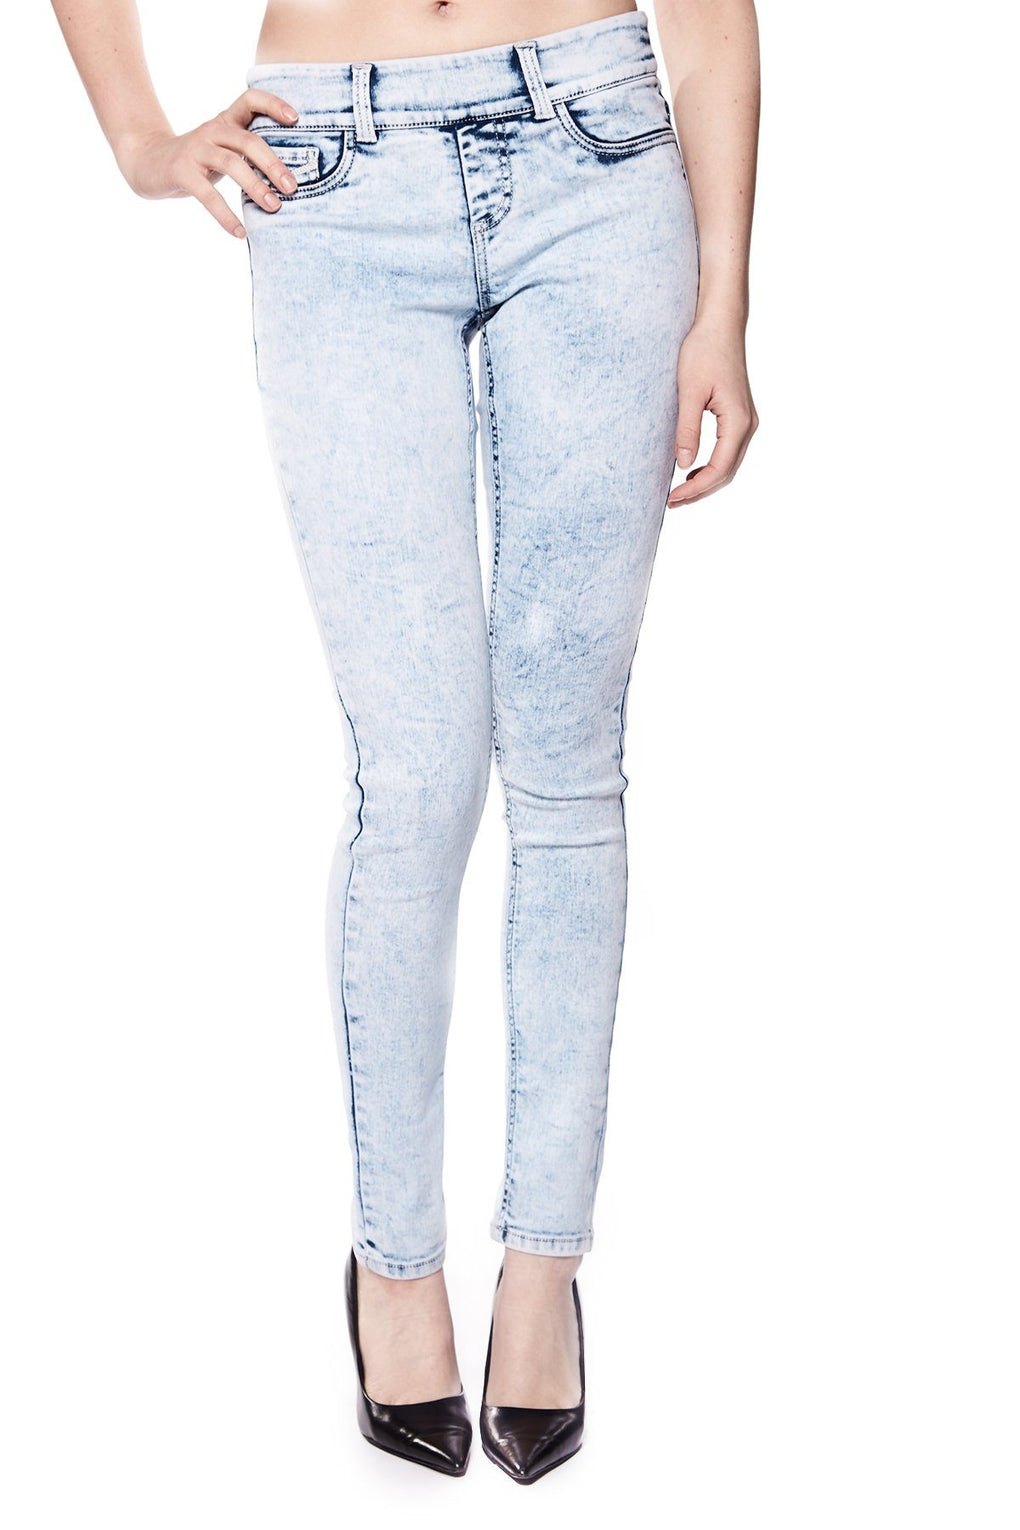 OLIVIA - Pull-On Jeggings (FX-OLIVIA-JBA)